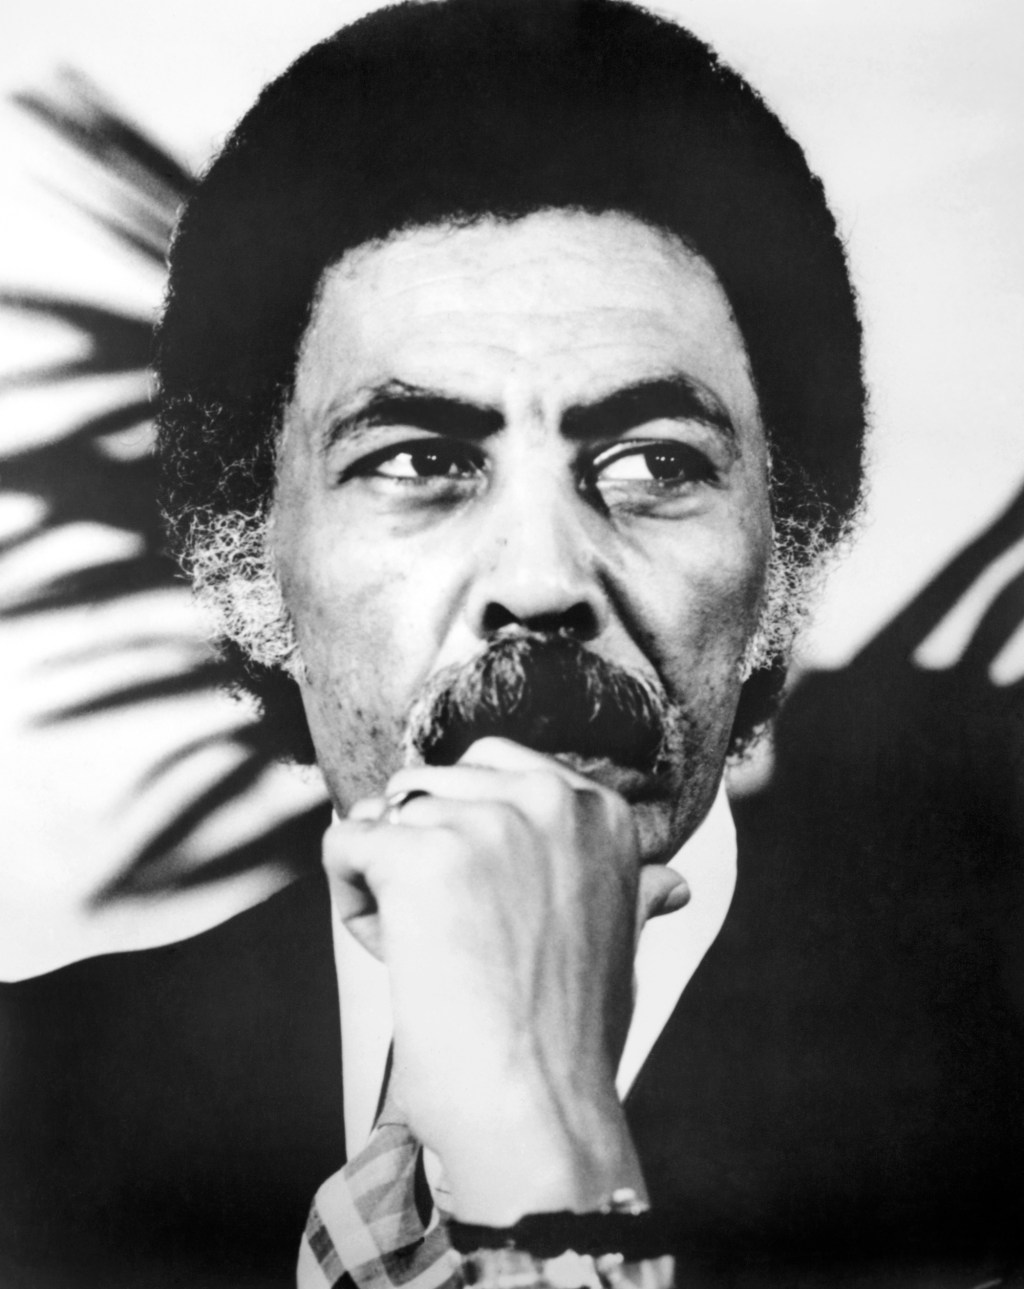 Rep. Ron Dellums, D-Calif. August 17, 1983. (Photo by CQ Roll Call)